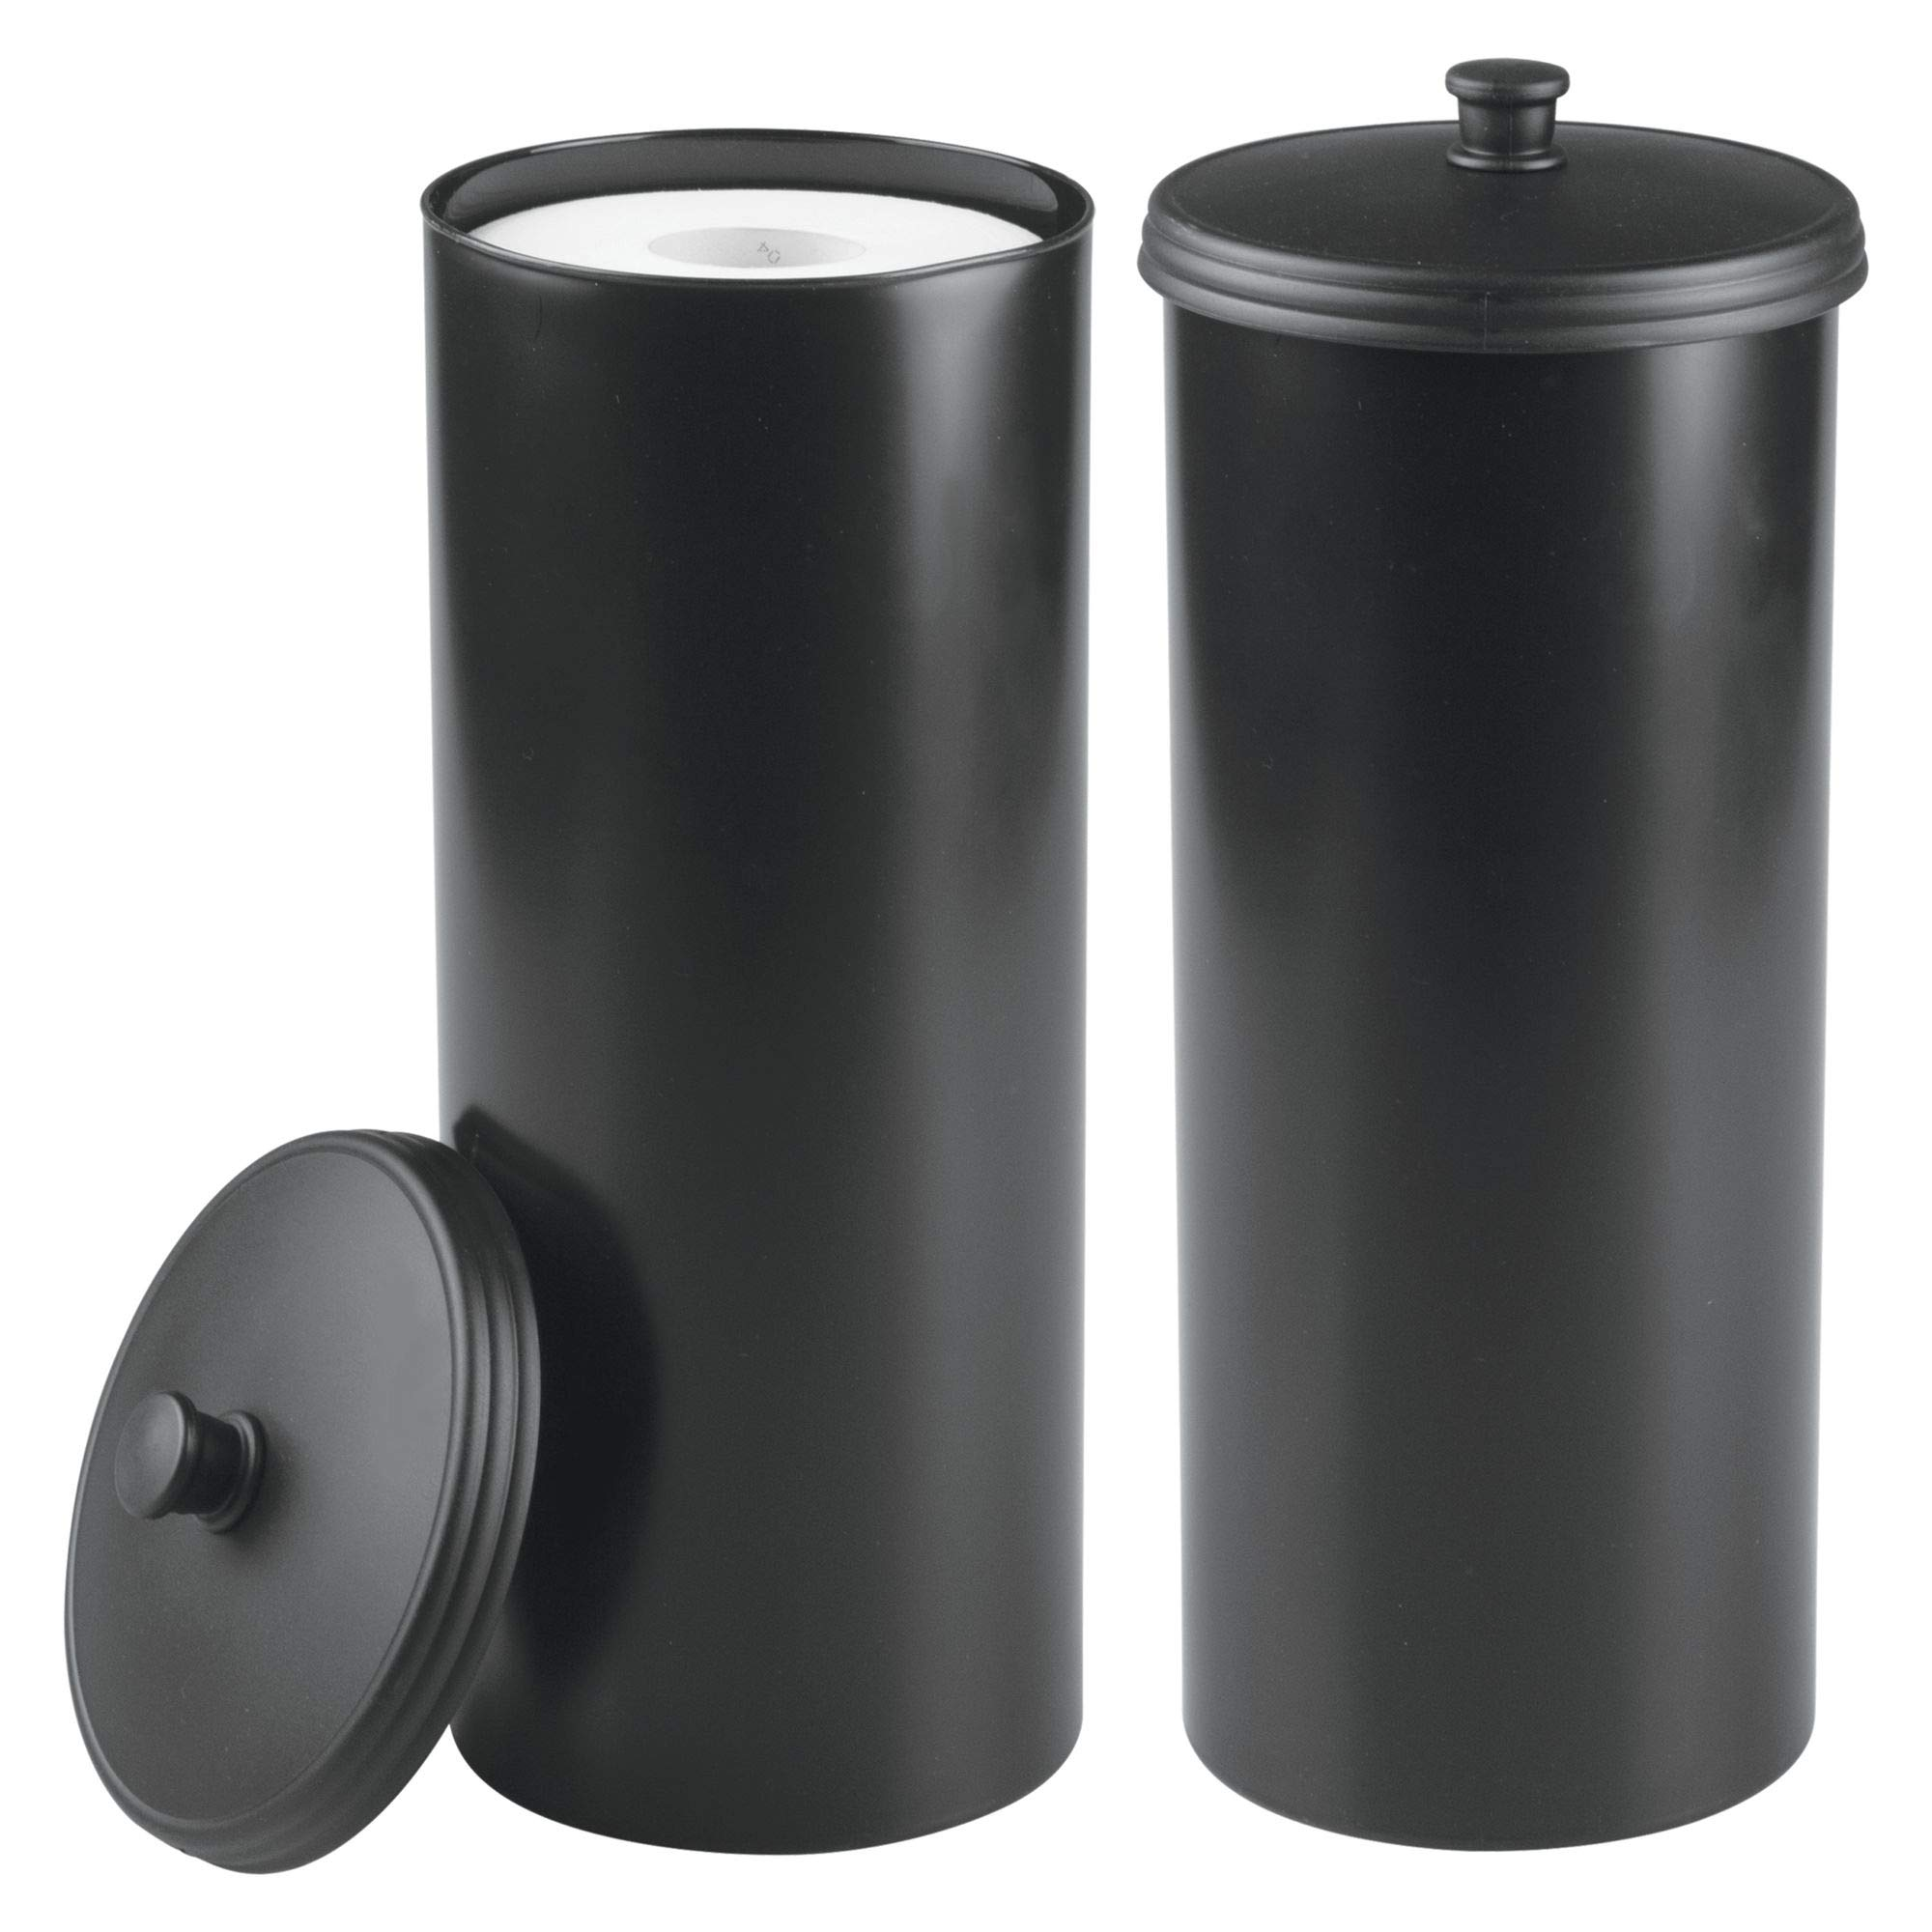 mDesign Plastic Free Standing Toilet Paper Holder Canister with Storage for 3 Extra Rolls of Toilet Tissue - for Bathroom/Powder Room - Holds Mega Rolls, 2 Pack - Black